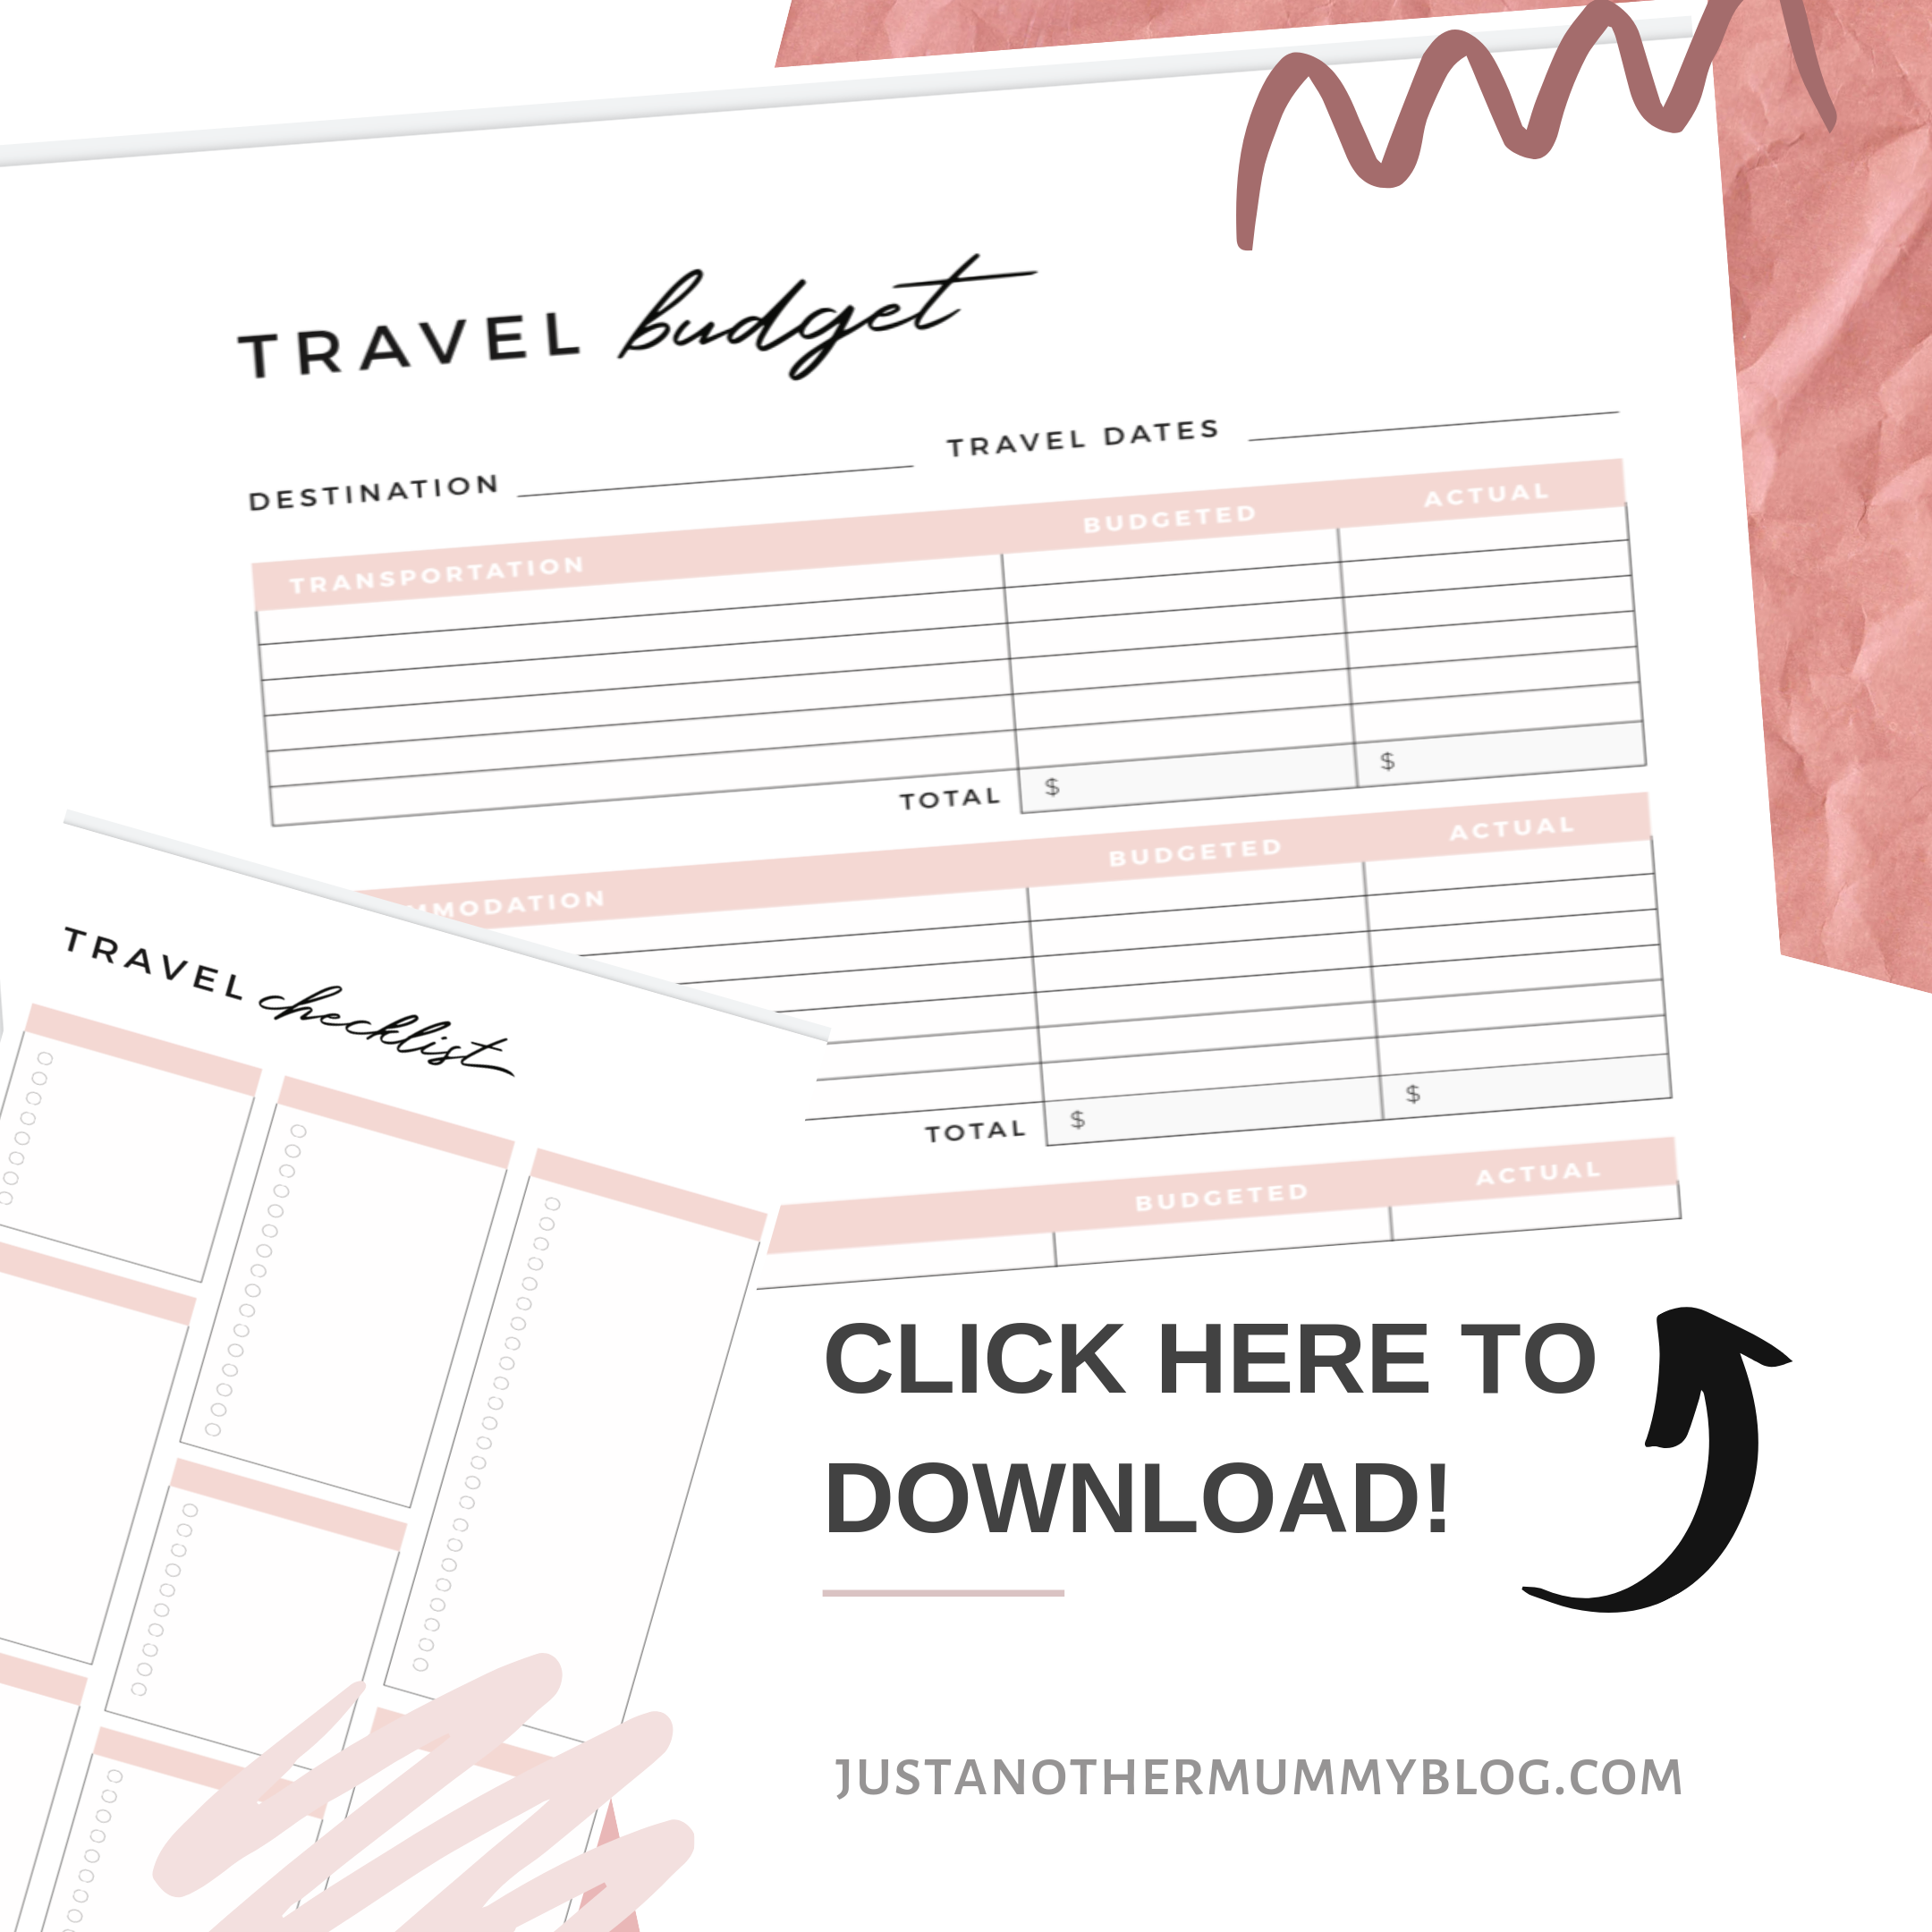 Travel Checklist and Budget Template - Just Another Mummy Blog